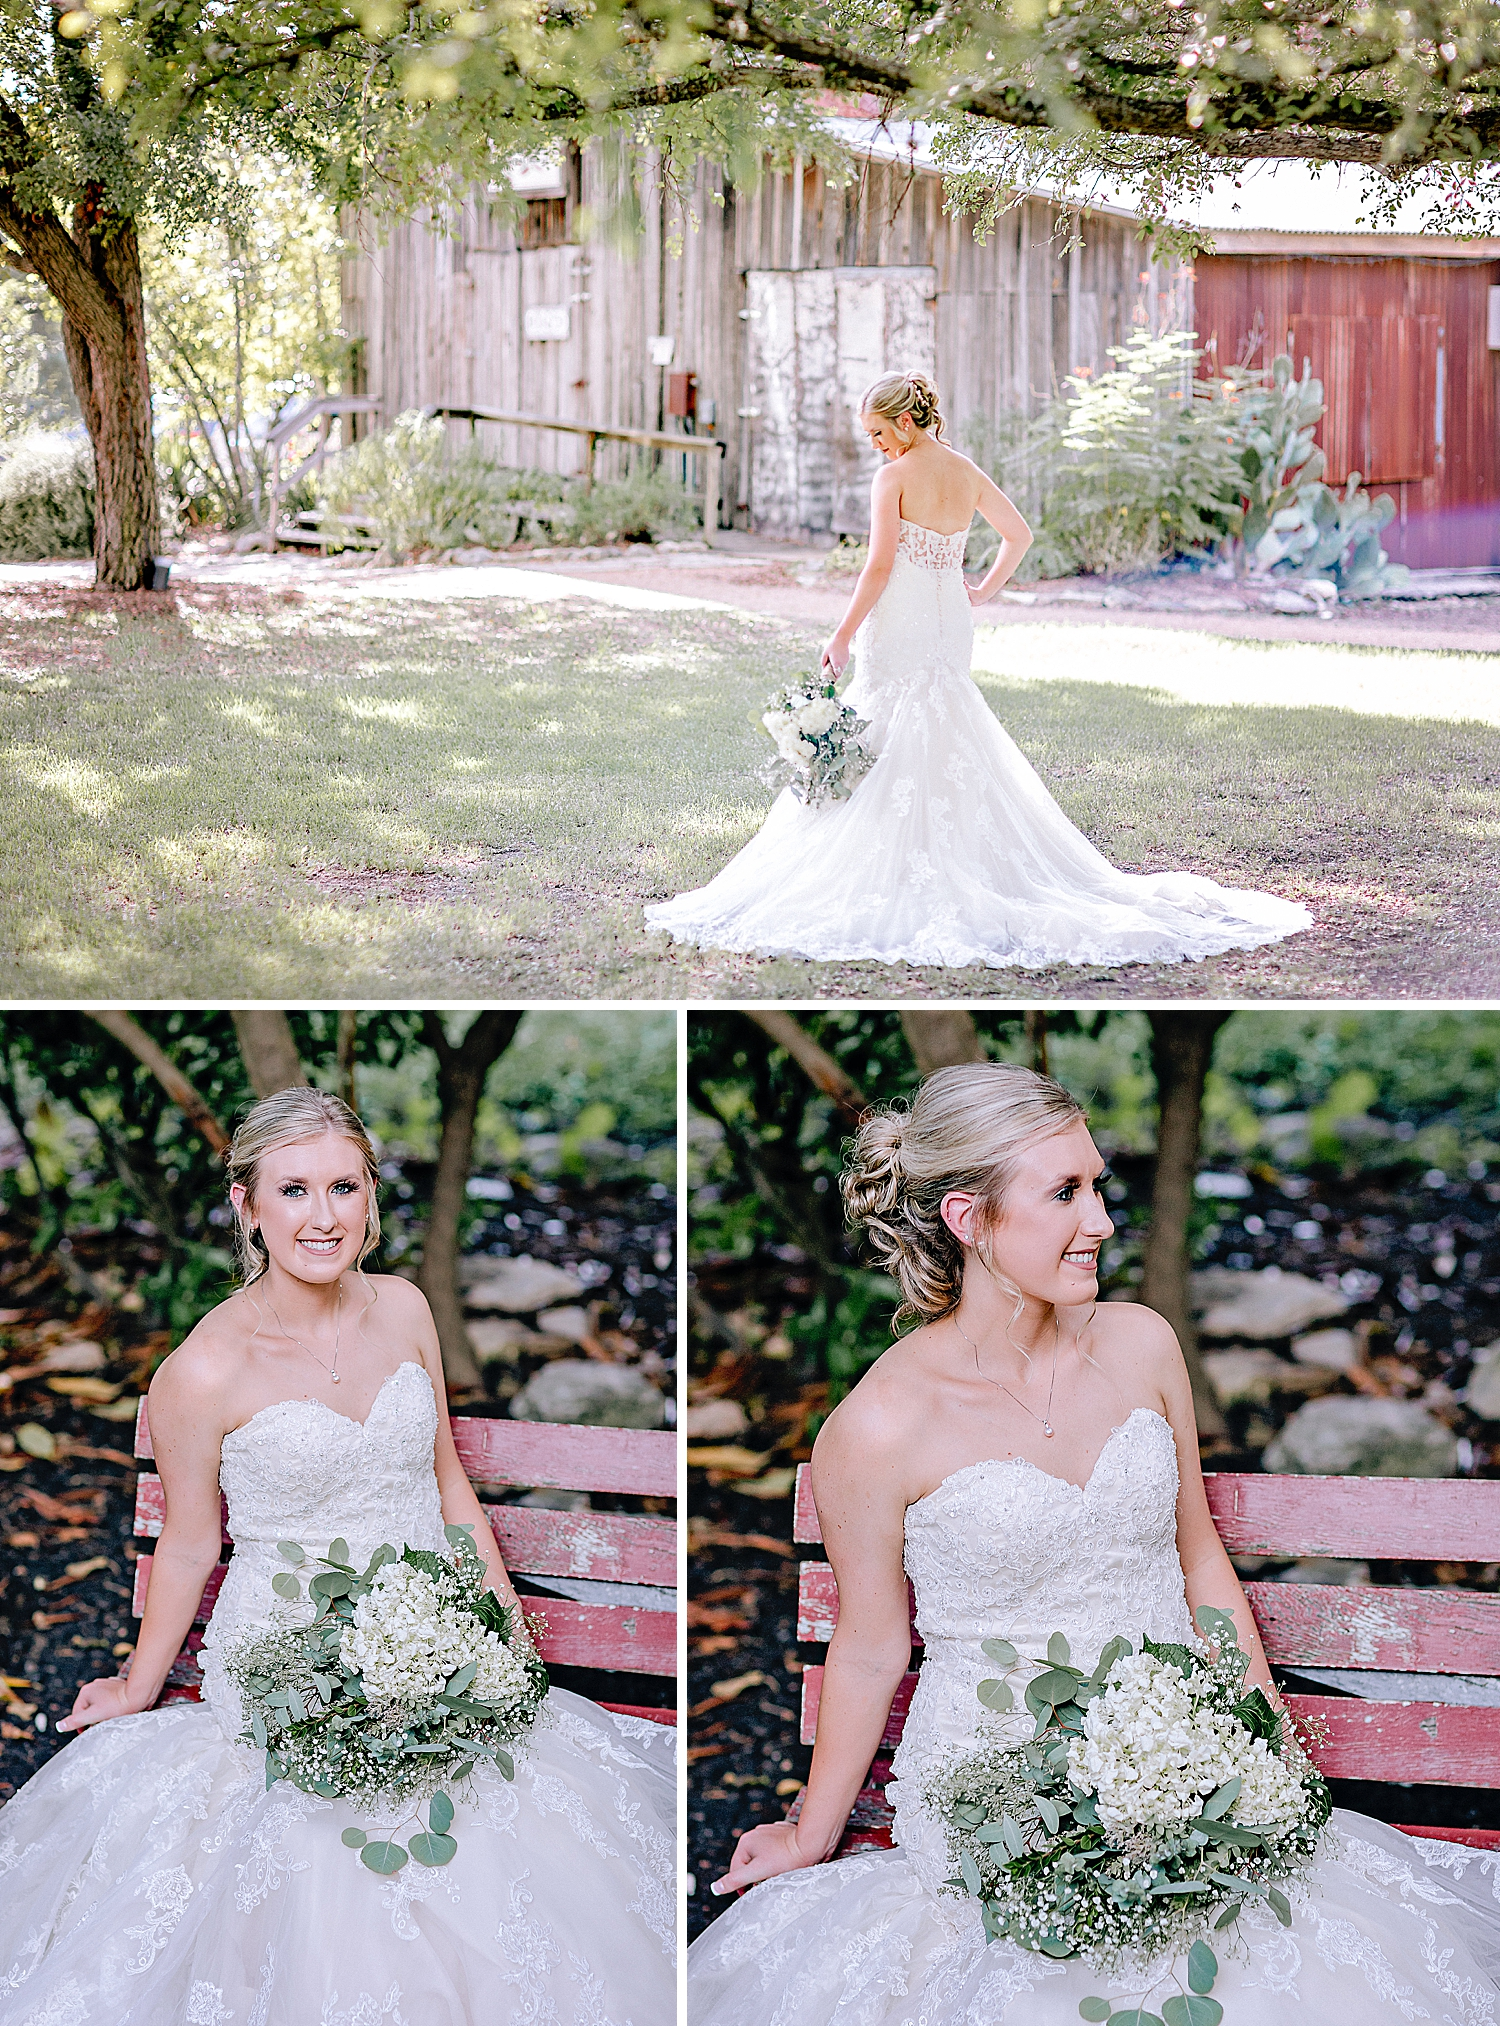 Carly-Barton-Photography-Bridal-Photos-Gruene-Rustic-New-Braunfels-Wedding-Photographer_0006.jpg